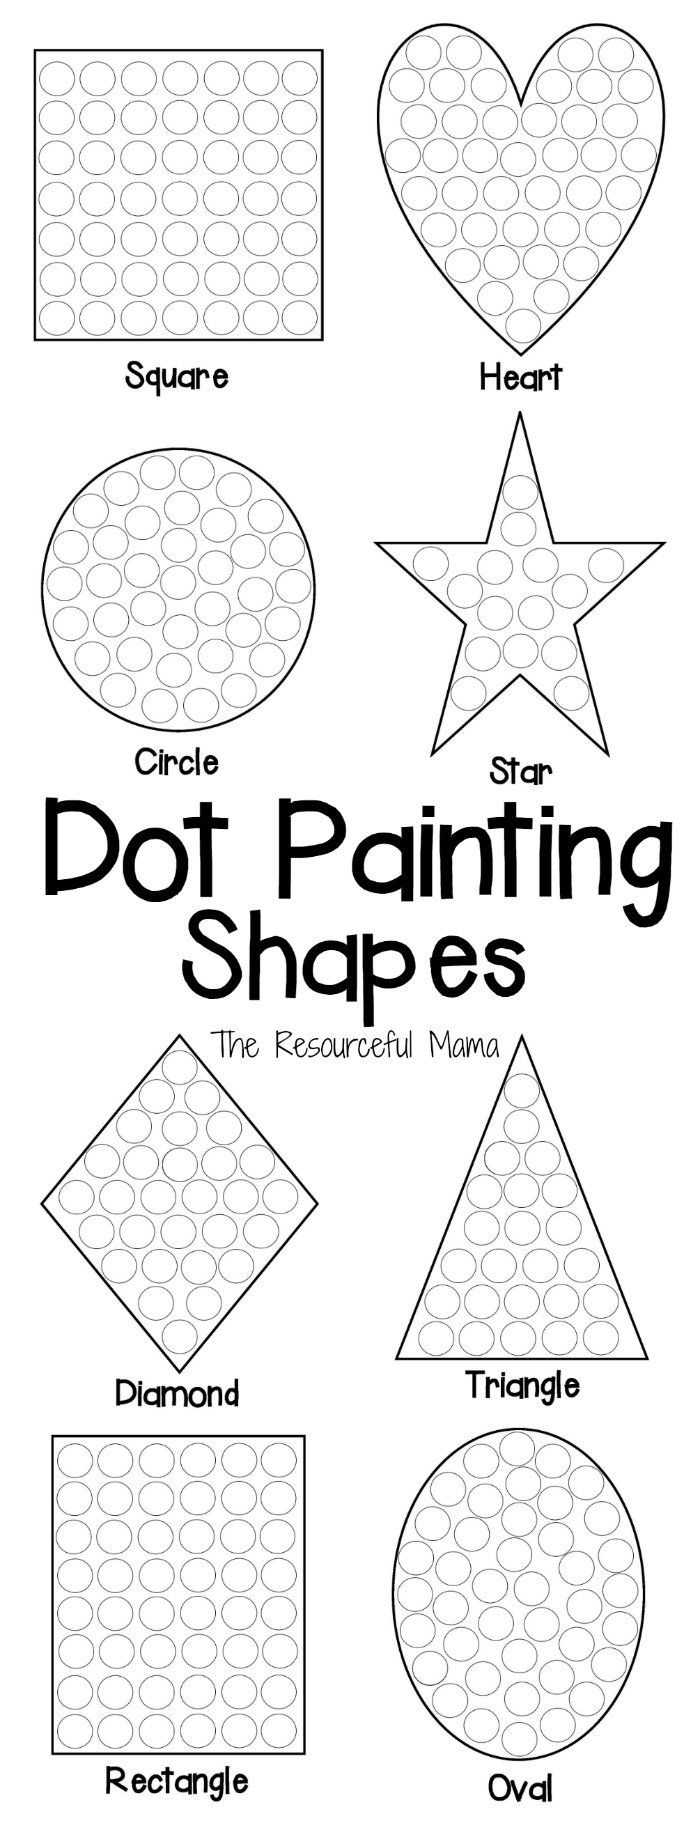 shapes dot painting free printable dot painting motor skills